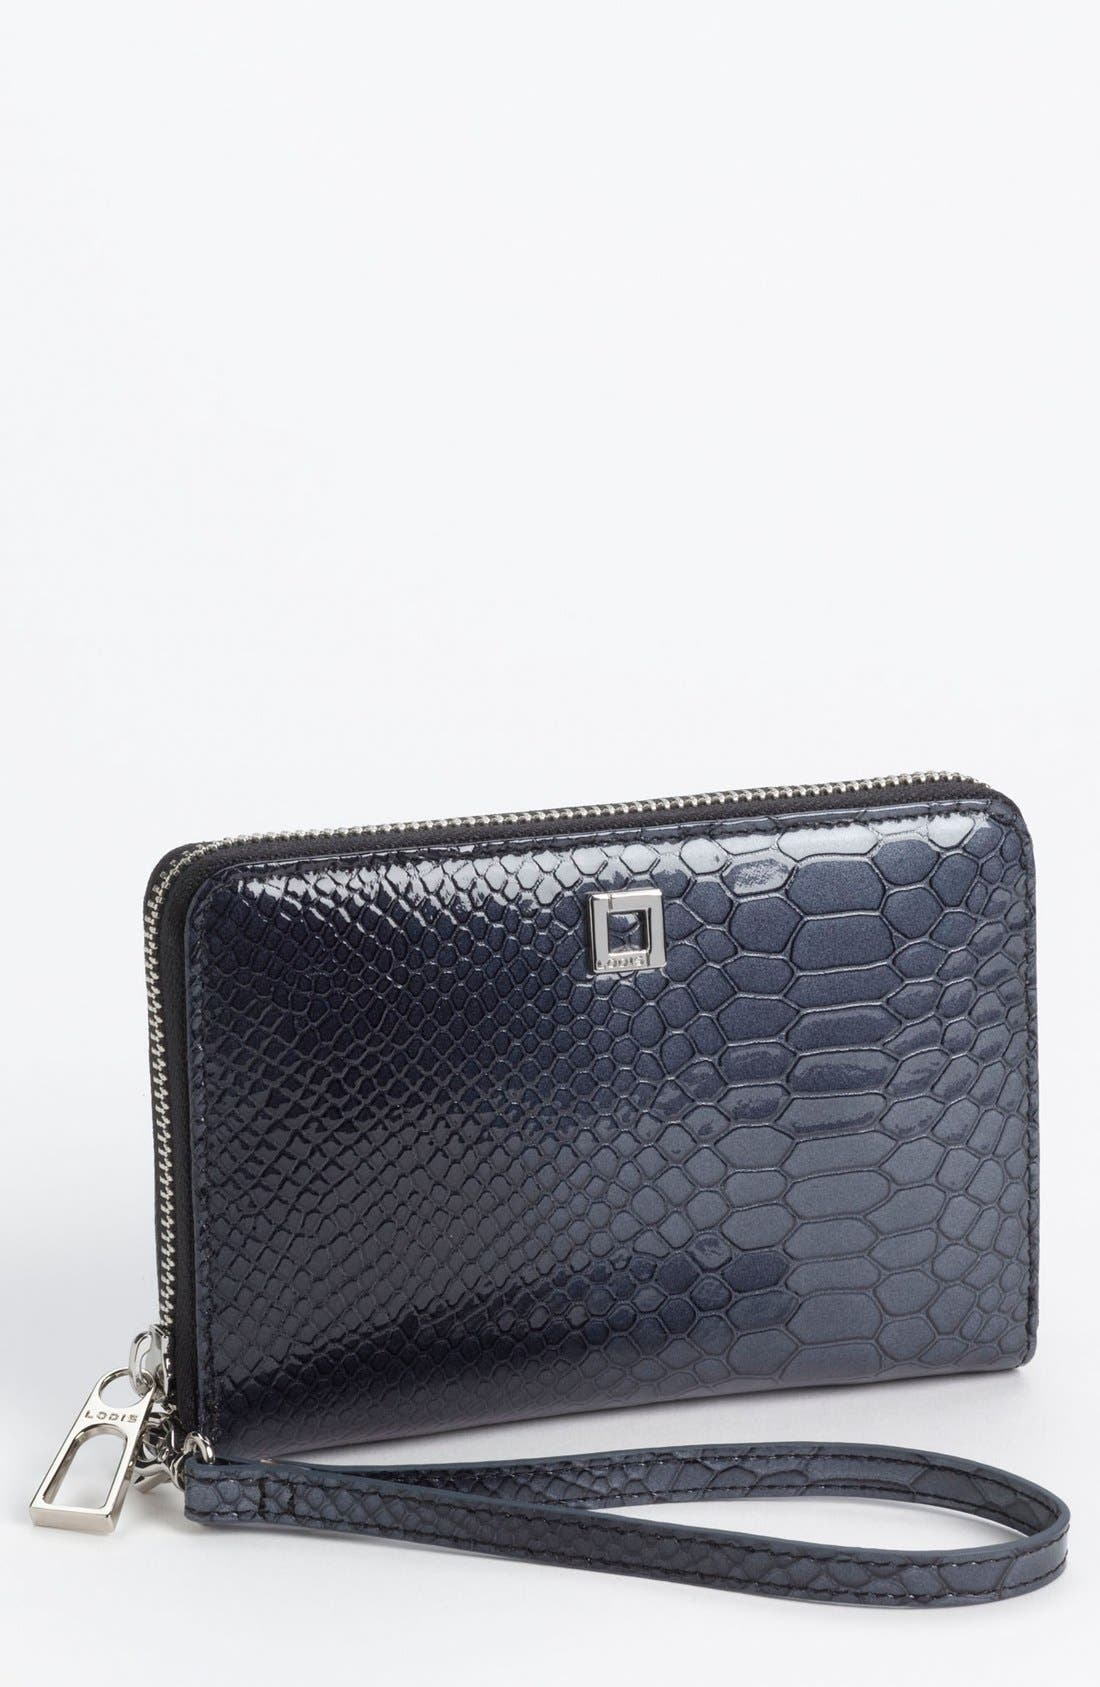 Alternate Image 1 Selected - Lodis 'Fiona' Embossed Phone Wristlet